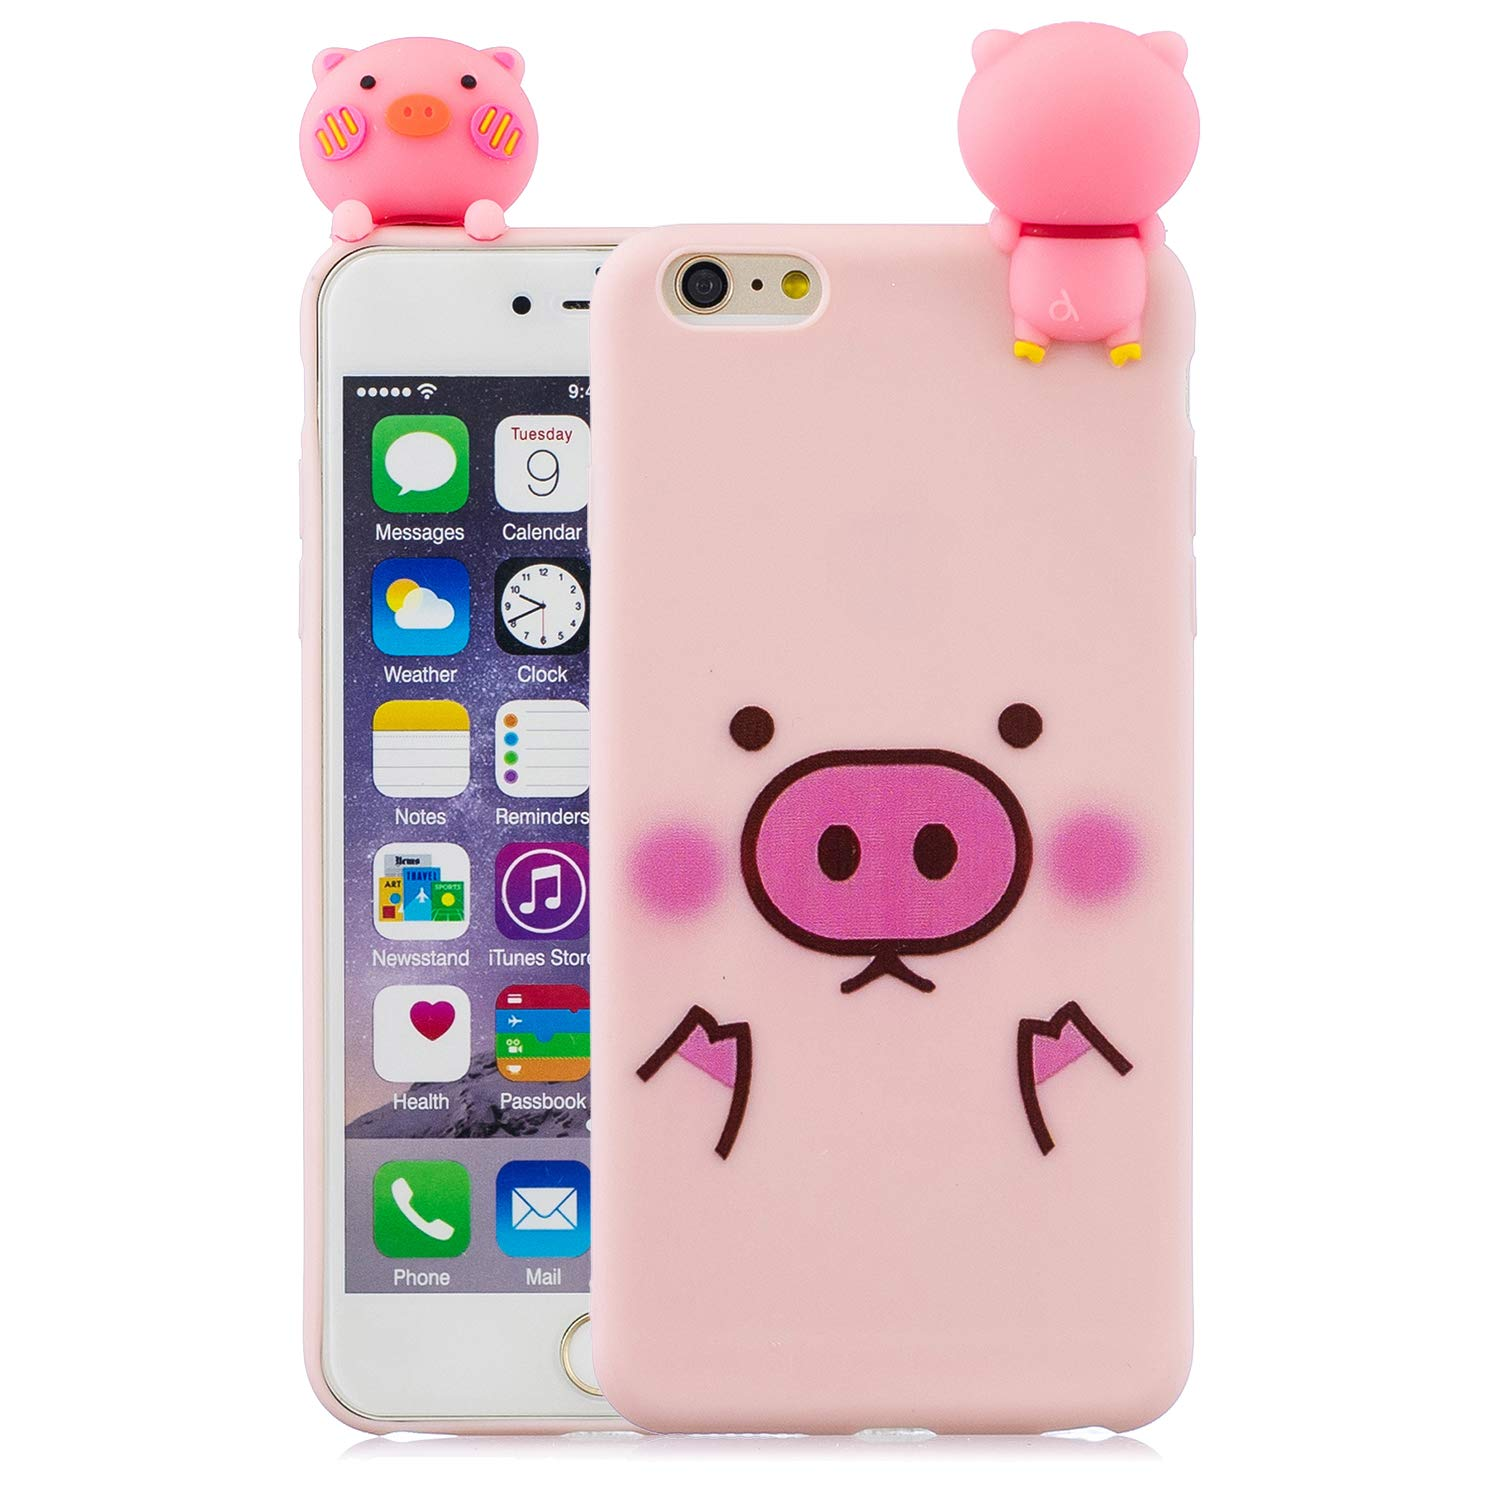 Carols Coque iPhone 6 Plus, [3D Panda Mobile Shell] iPhone 6 Plus /6S Plus (5,5 Zoll) Étui TPU Silicone Souple Coque - Un tas de cochons